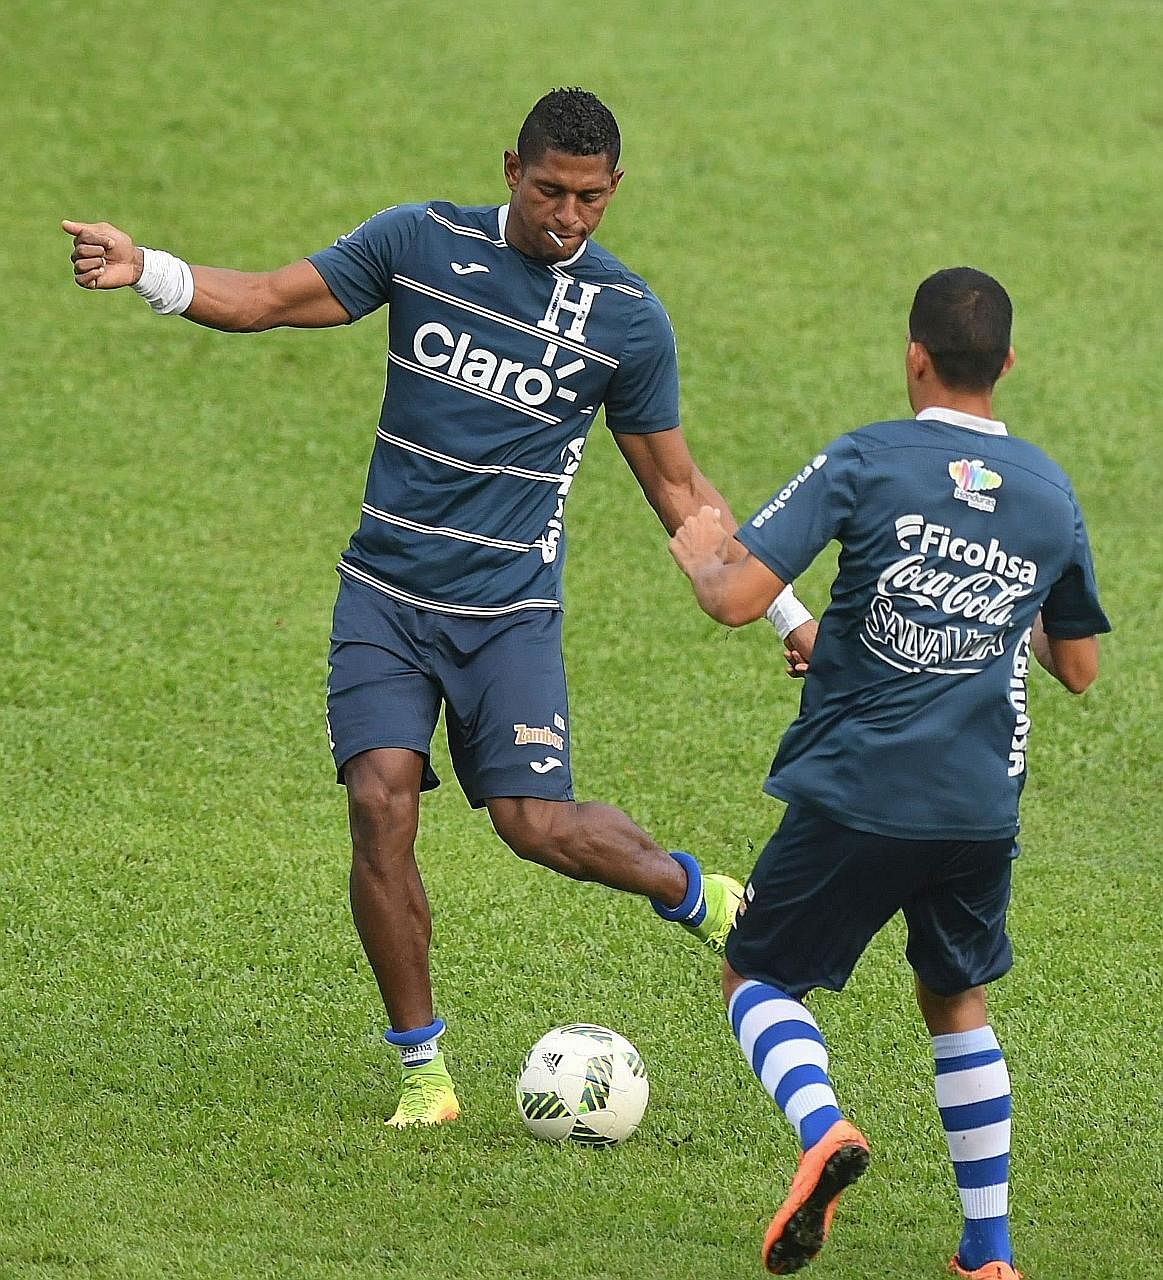 Carlo Costly showing Allan Vargas (right) some nifty footwork during a training session at the Olympic Metropolitan stadium in San Pedro Sula. The Hondurans, who qualified for the last two World Cups, host Australia in the first of a two-legged affai